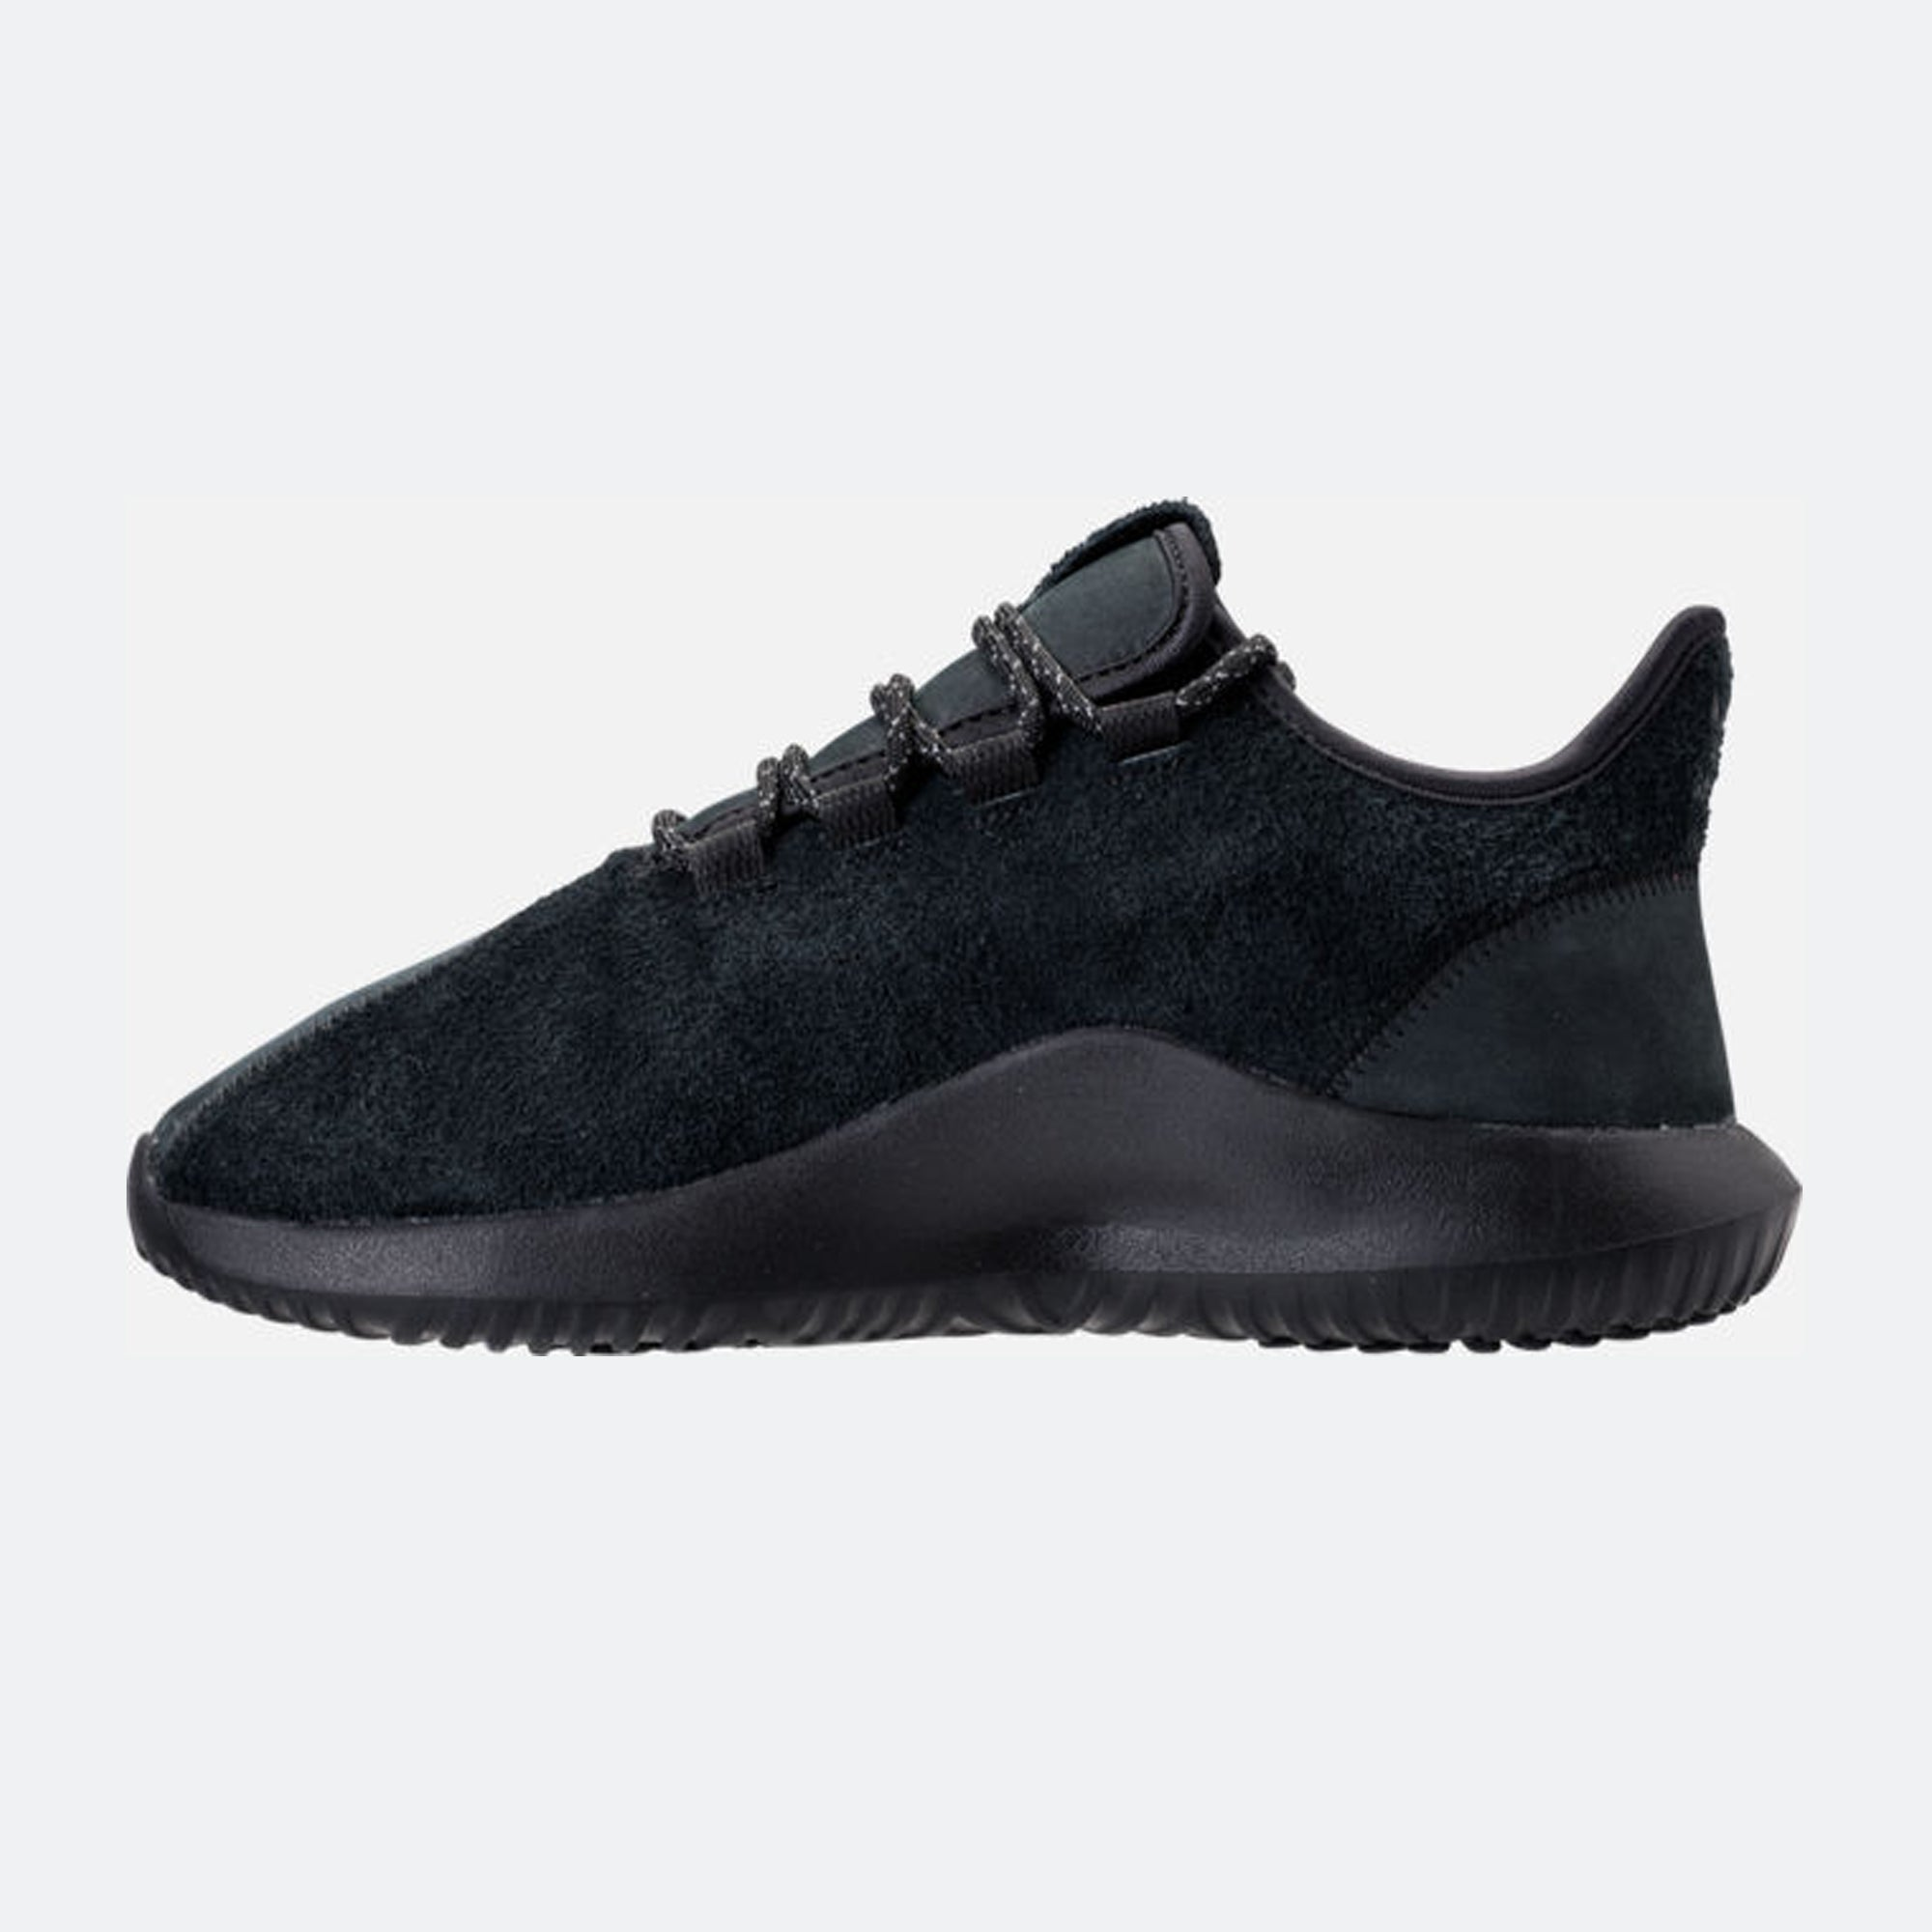 Enjoy stylish simplicity in the adidas Tubular Shadow Casual